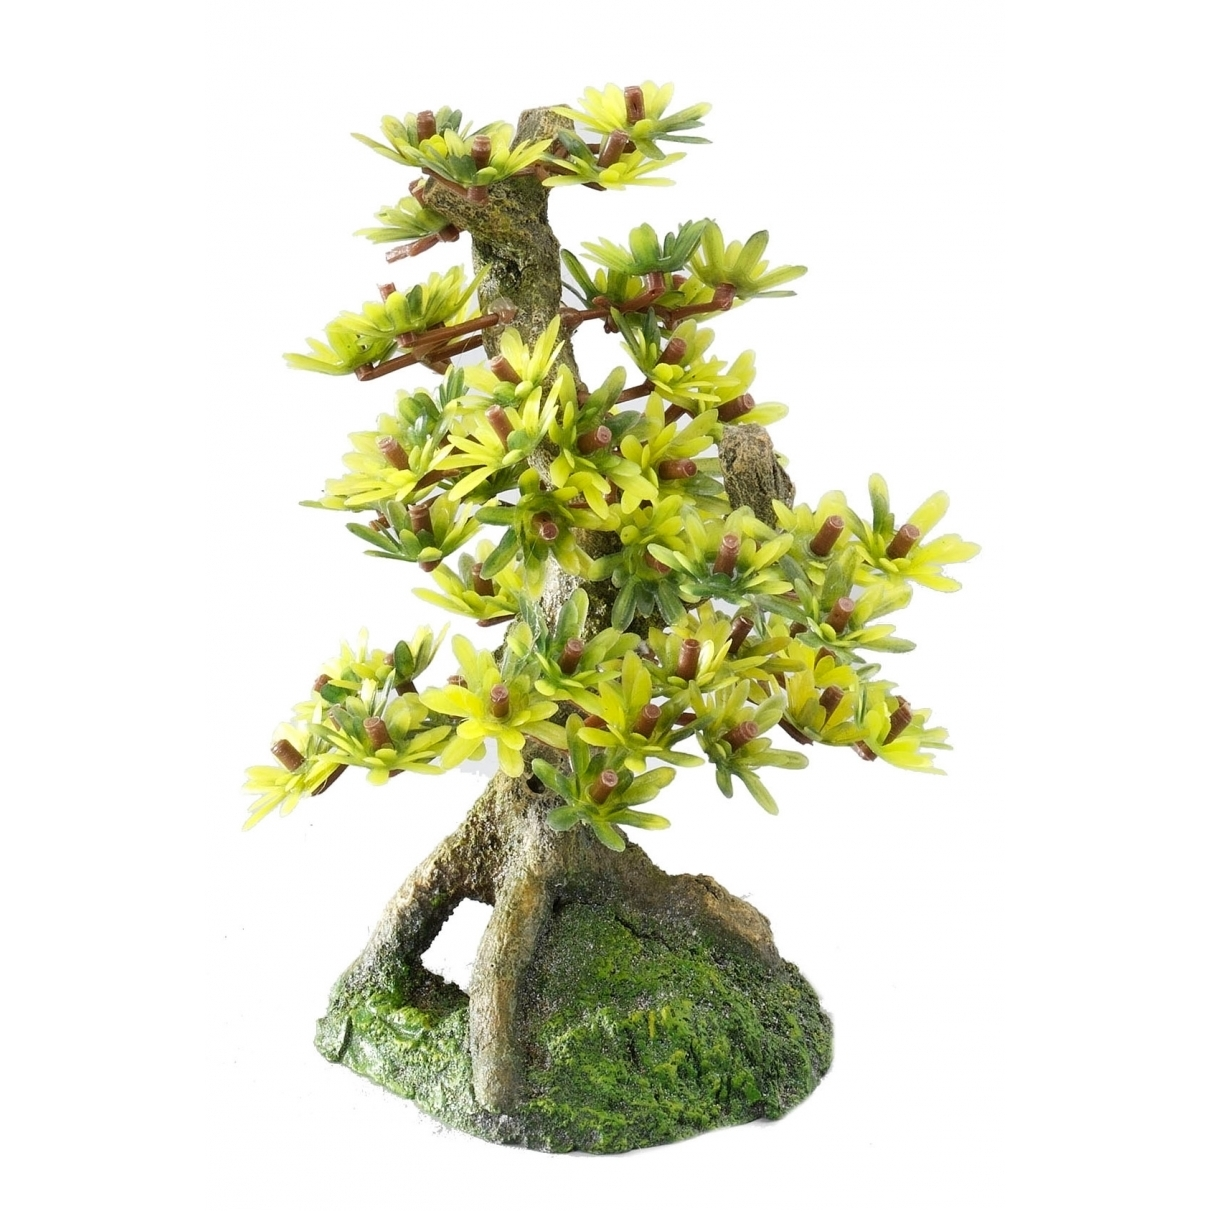 EBI Aqua Della Bonsai Bäume, Bonsai M - Sort B (15cm)